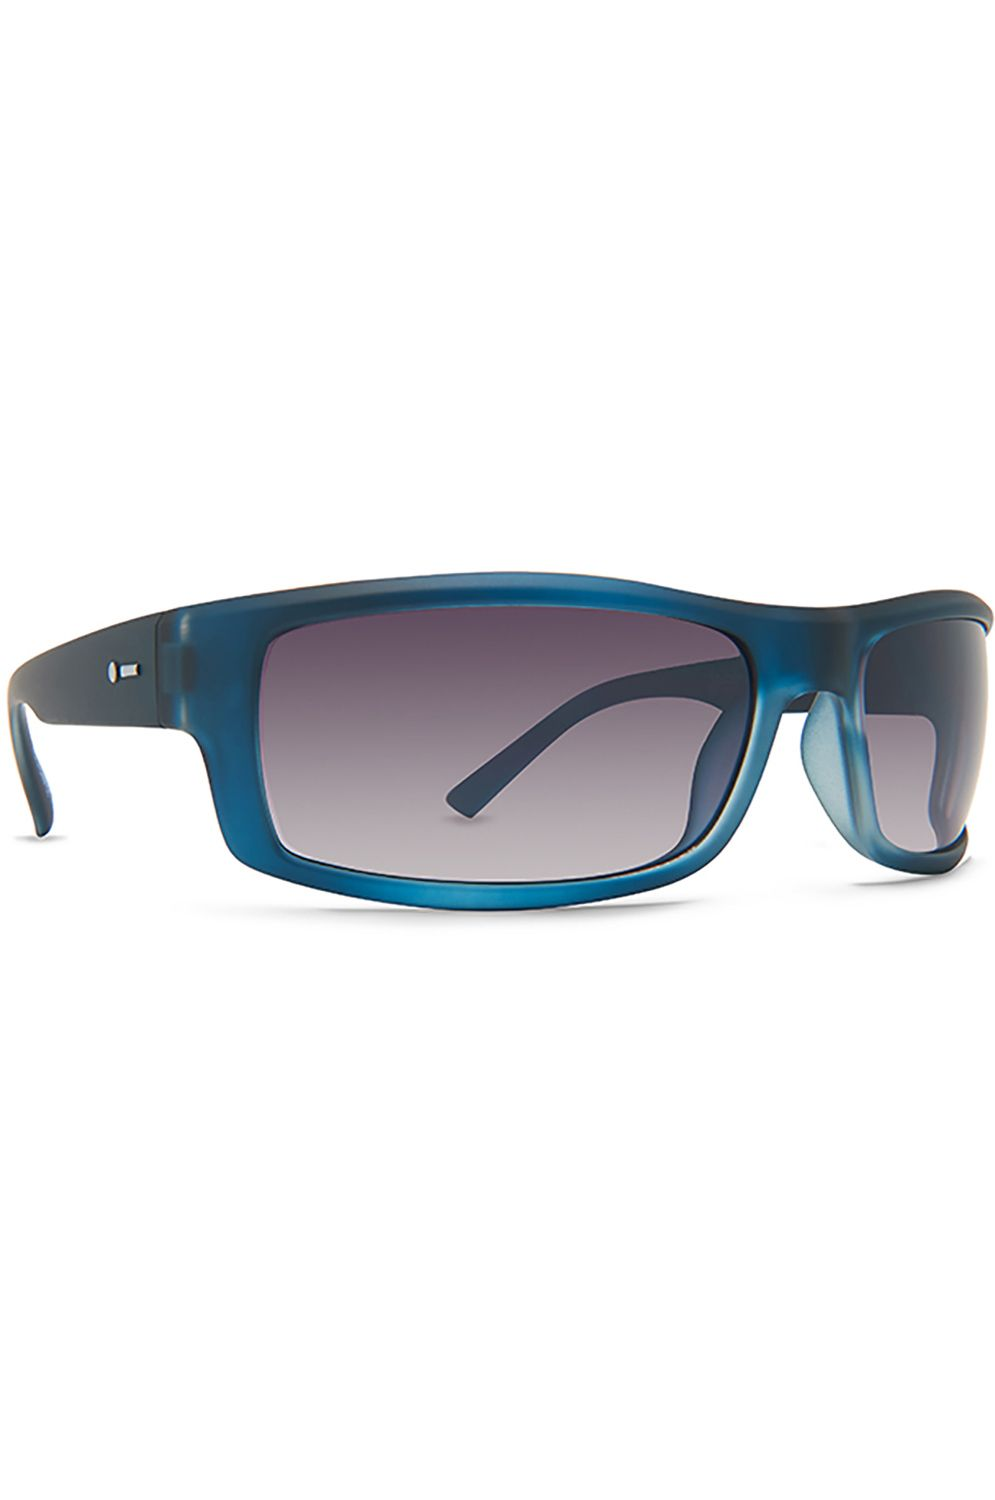 Oculos Dot Dash LIL DYNO Teal Gloss / Grey